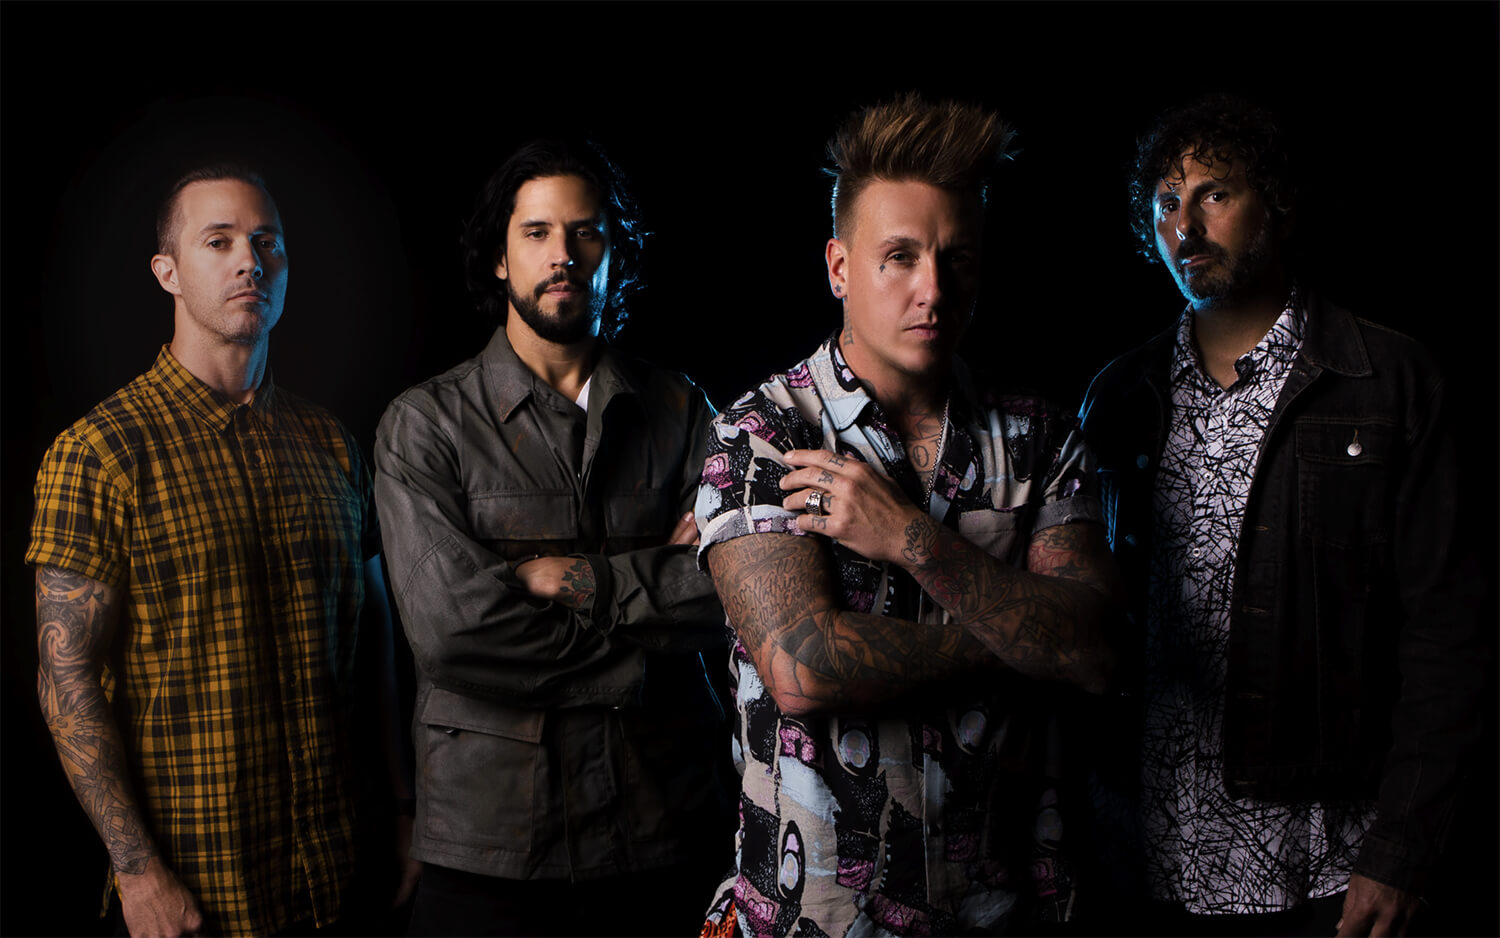 PAPA ROACH ANNOUNCE 'INFEST' 20 YEAR ANNIVERSARY LIVE STREAM PERFORMANCE